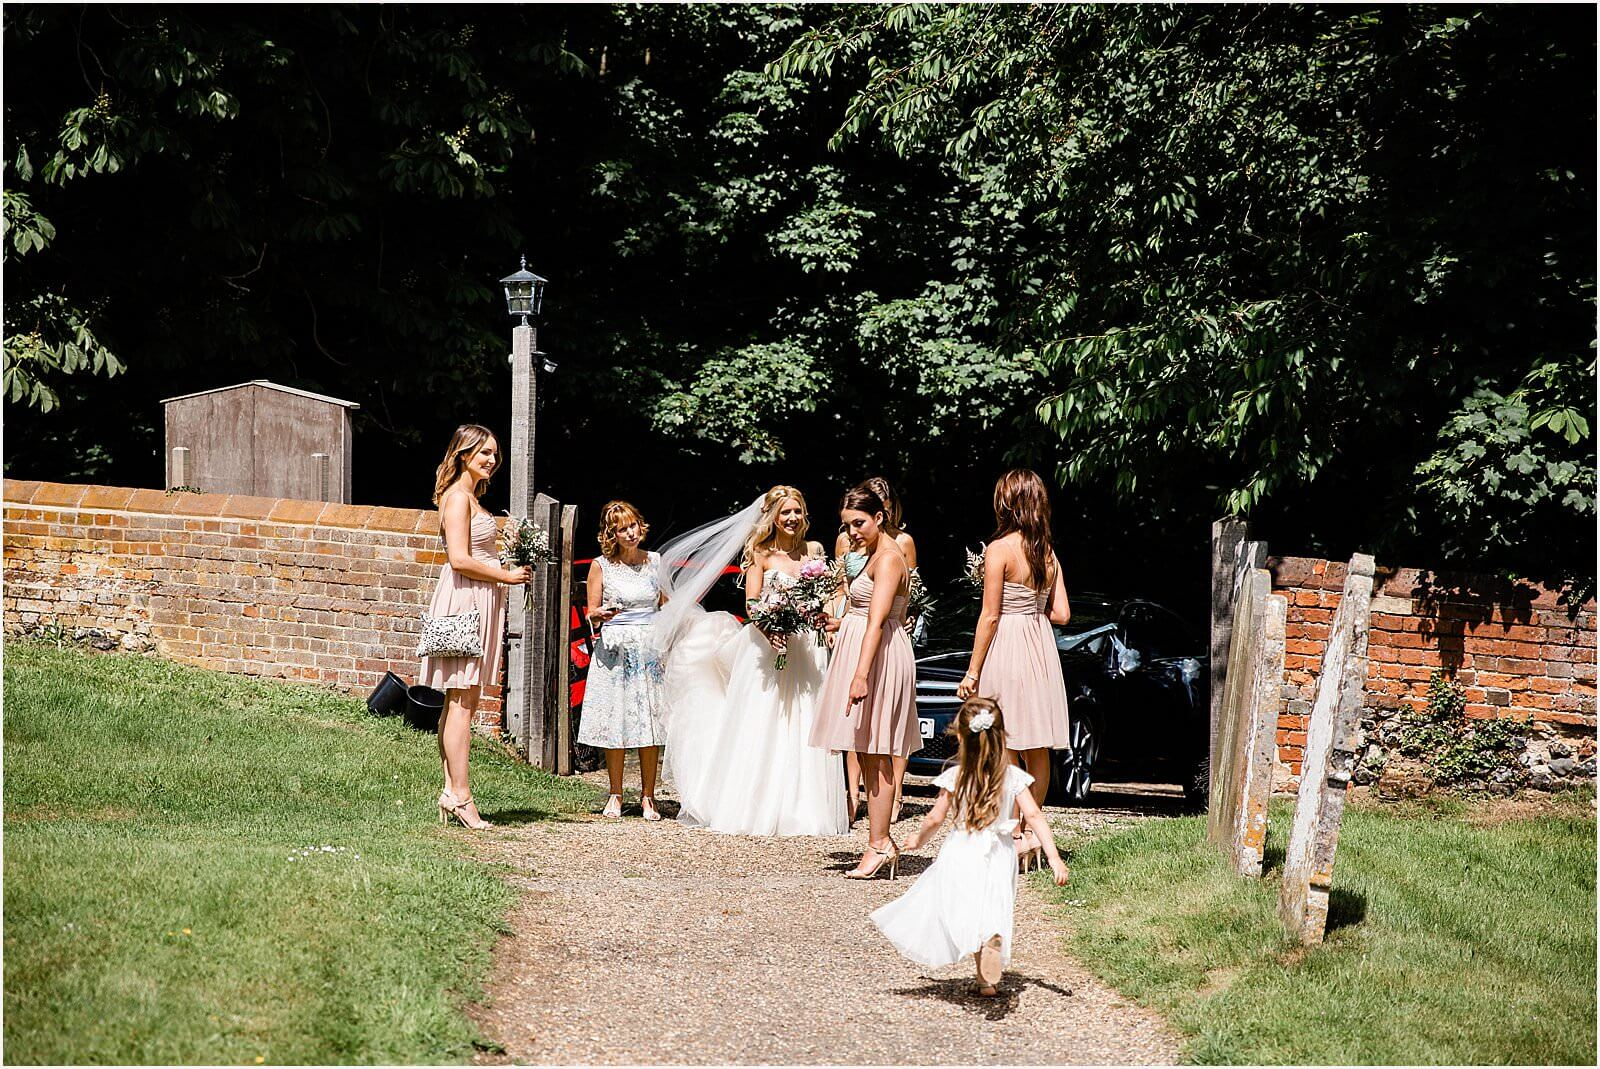 Polstead Church Wedding | Carla & Toby 20